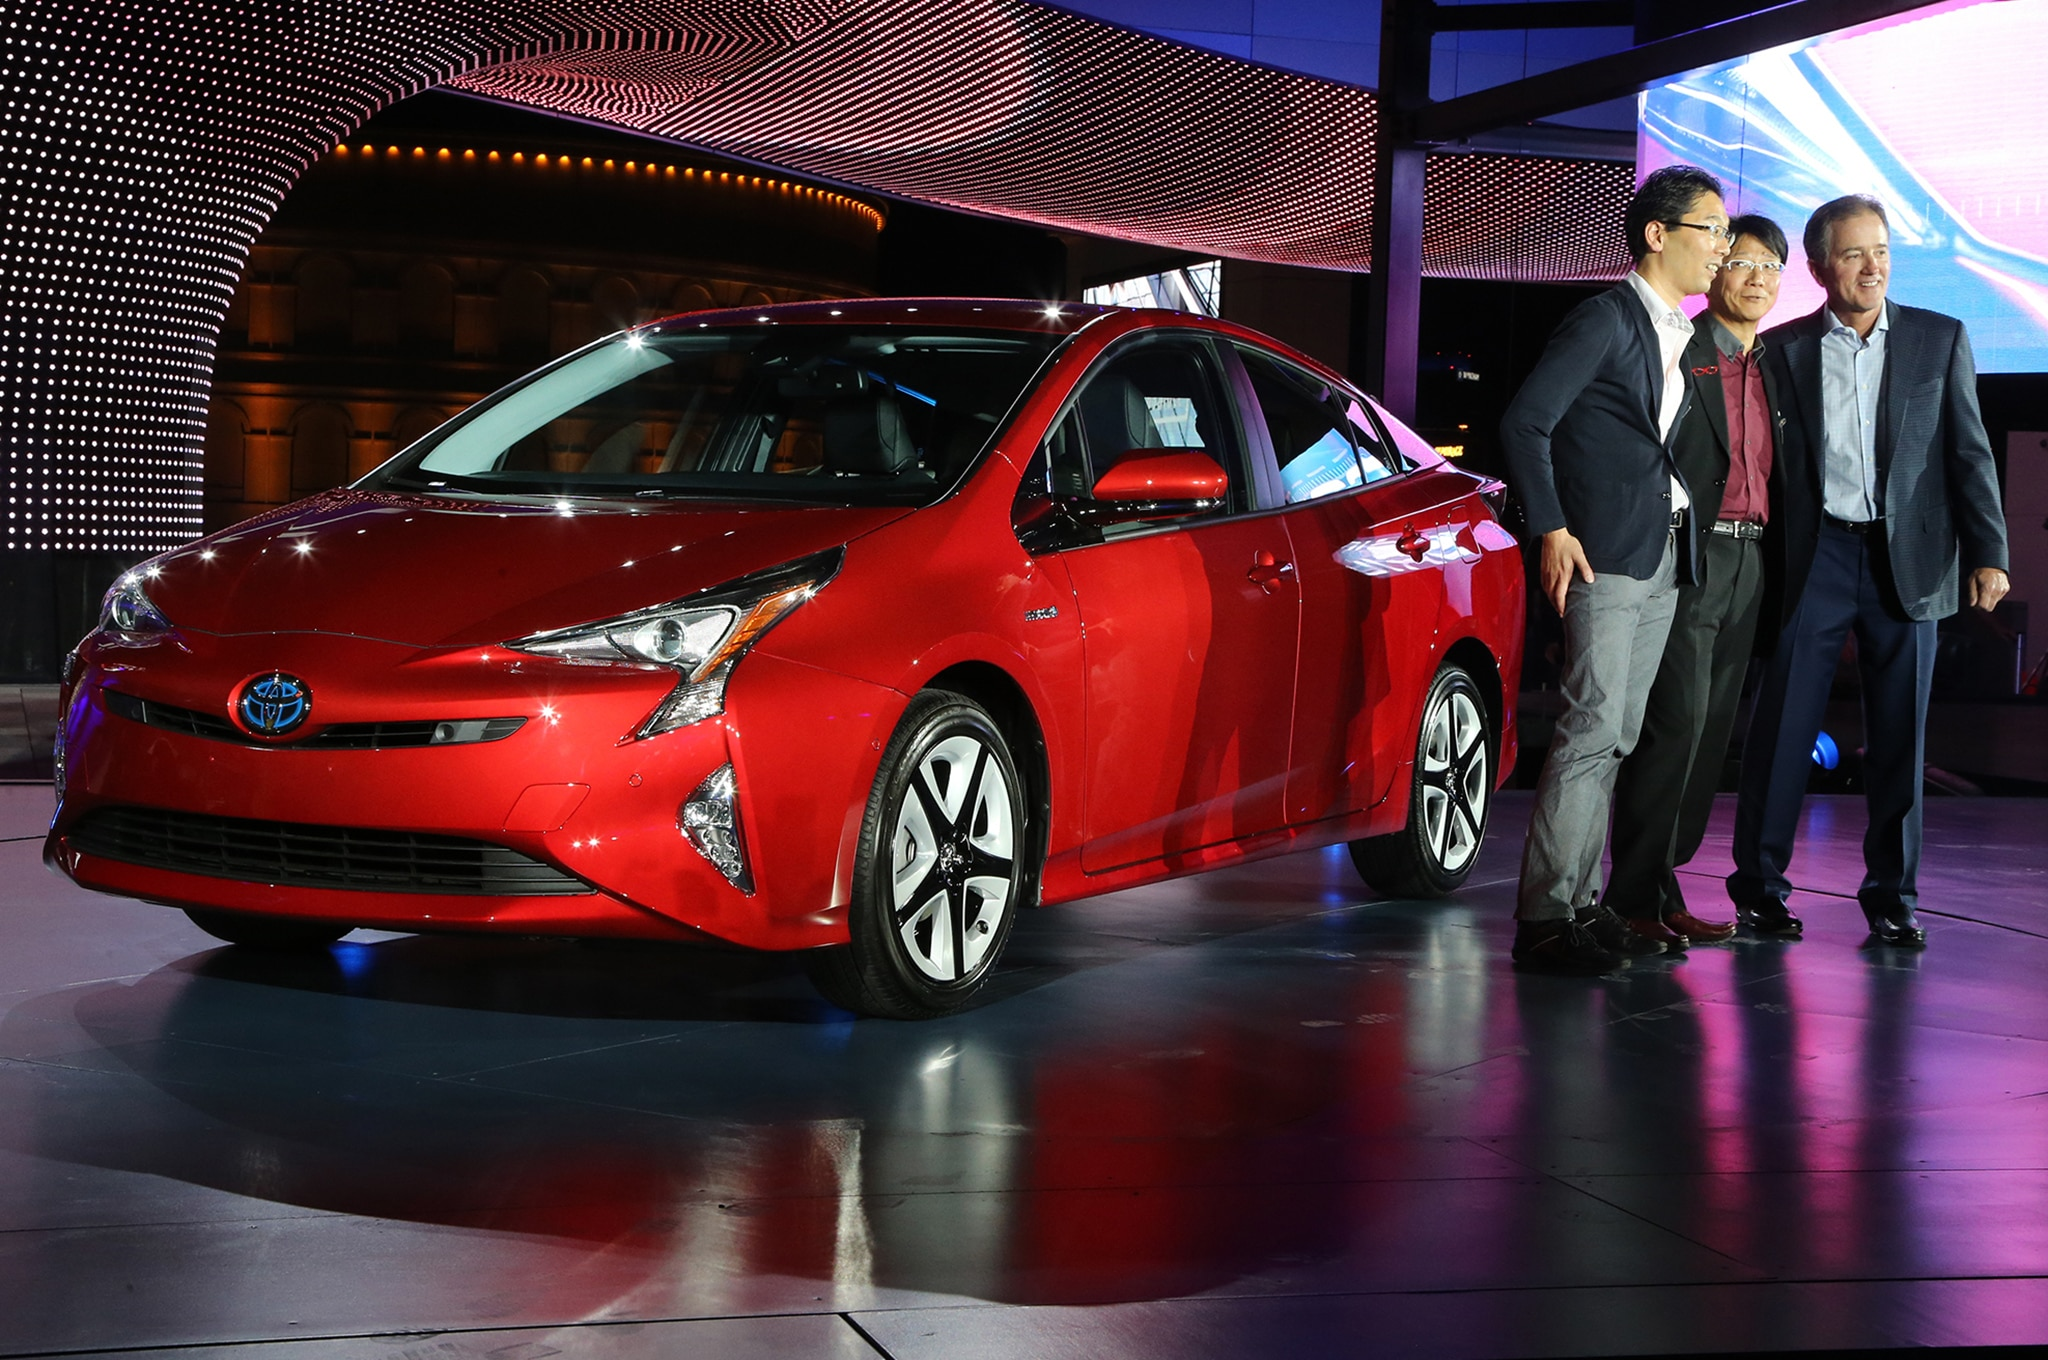 case toyota prius Toyota motor corporation's marketing mix or 4ps (product, place, promotion, price) is examined in this case study and company analysis on market strategies.